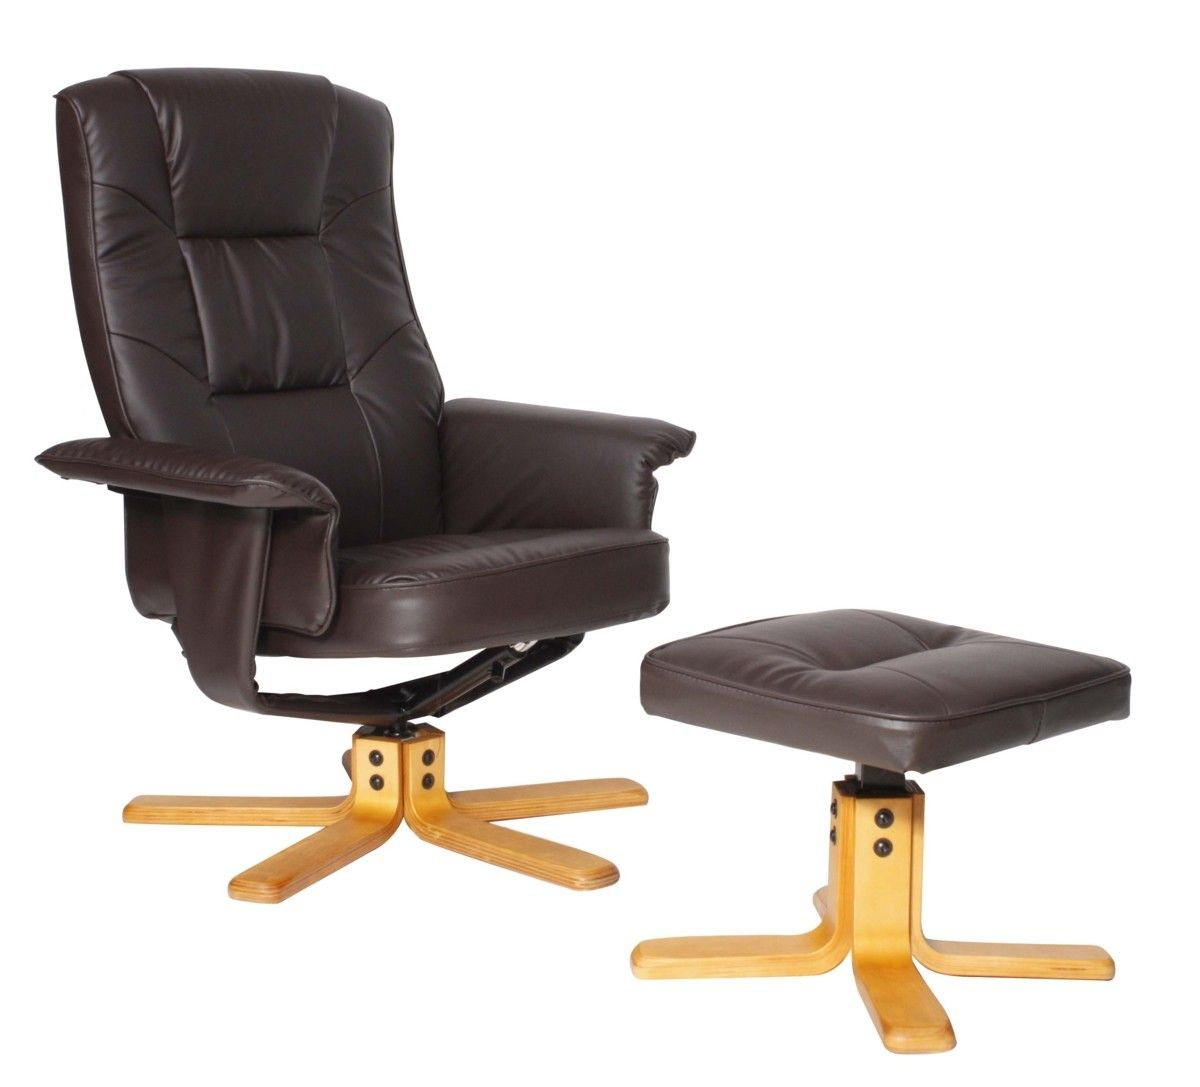 Premium Brown Recliner With Footstool Set Brown Recliner Faux Leather Chair Contemporary Recliners